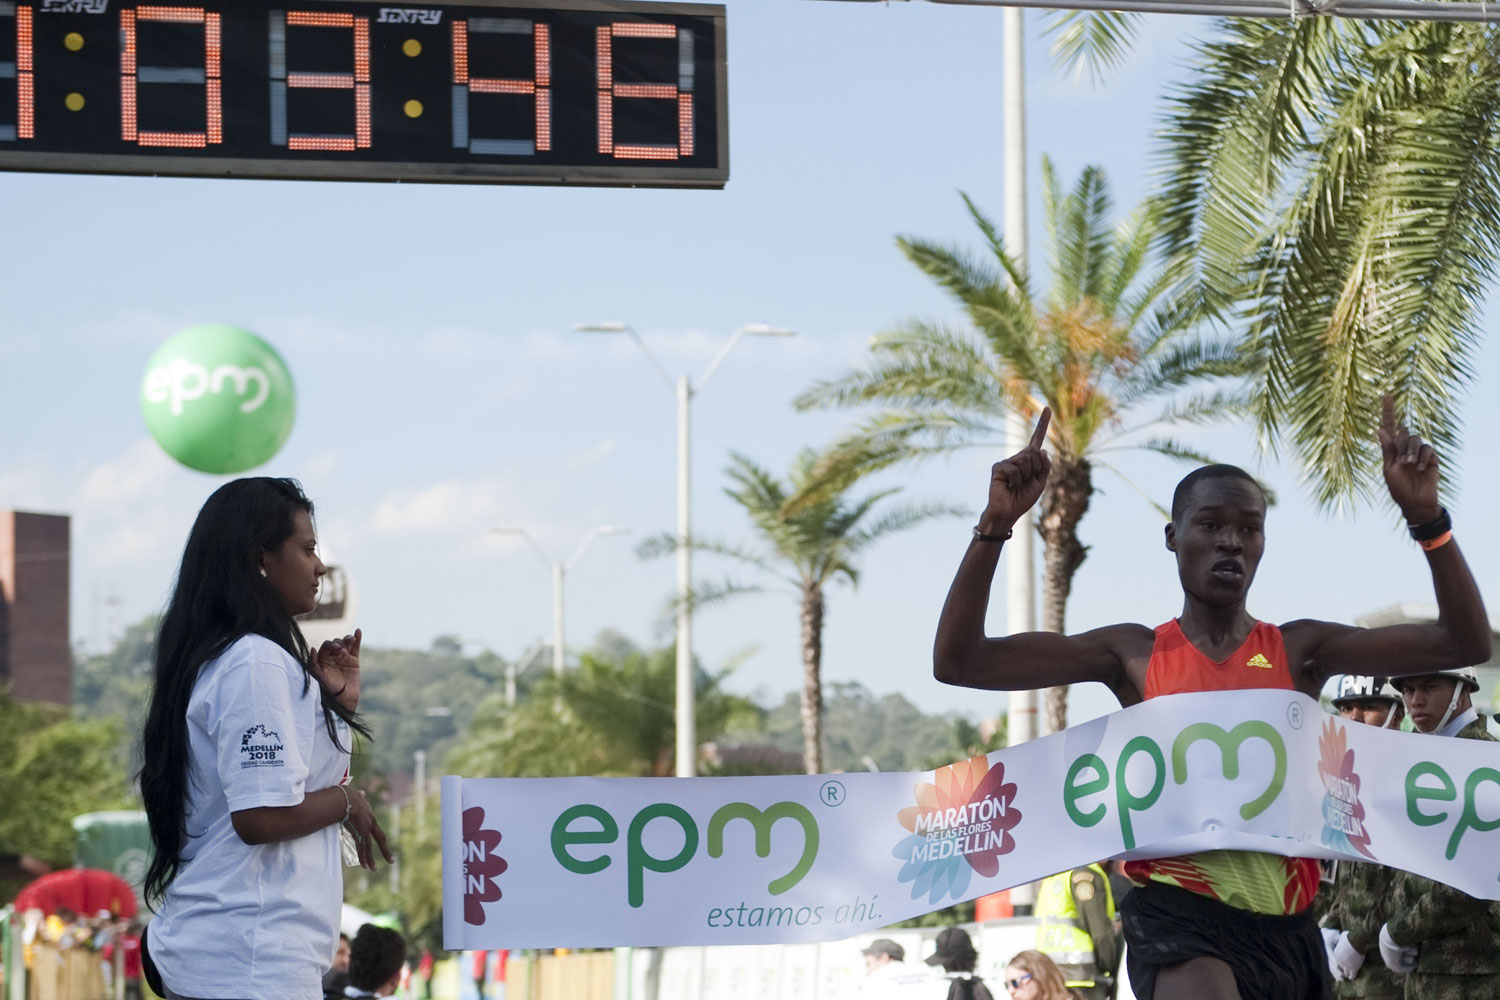 Kenyan runner Julius Kipyego Ketter crosses the finish line to win Medellin's Flowers Half-Marathon in the Colombian city of Medellin.